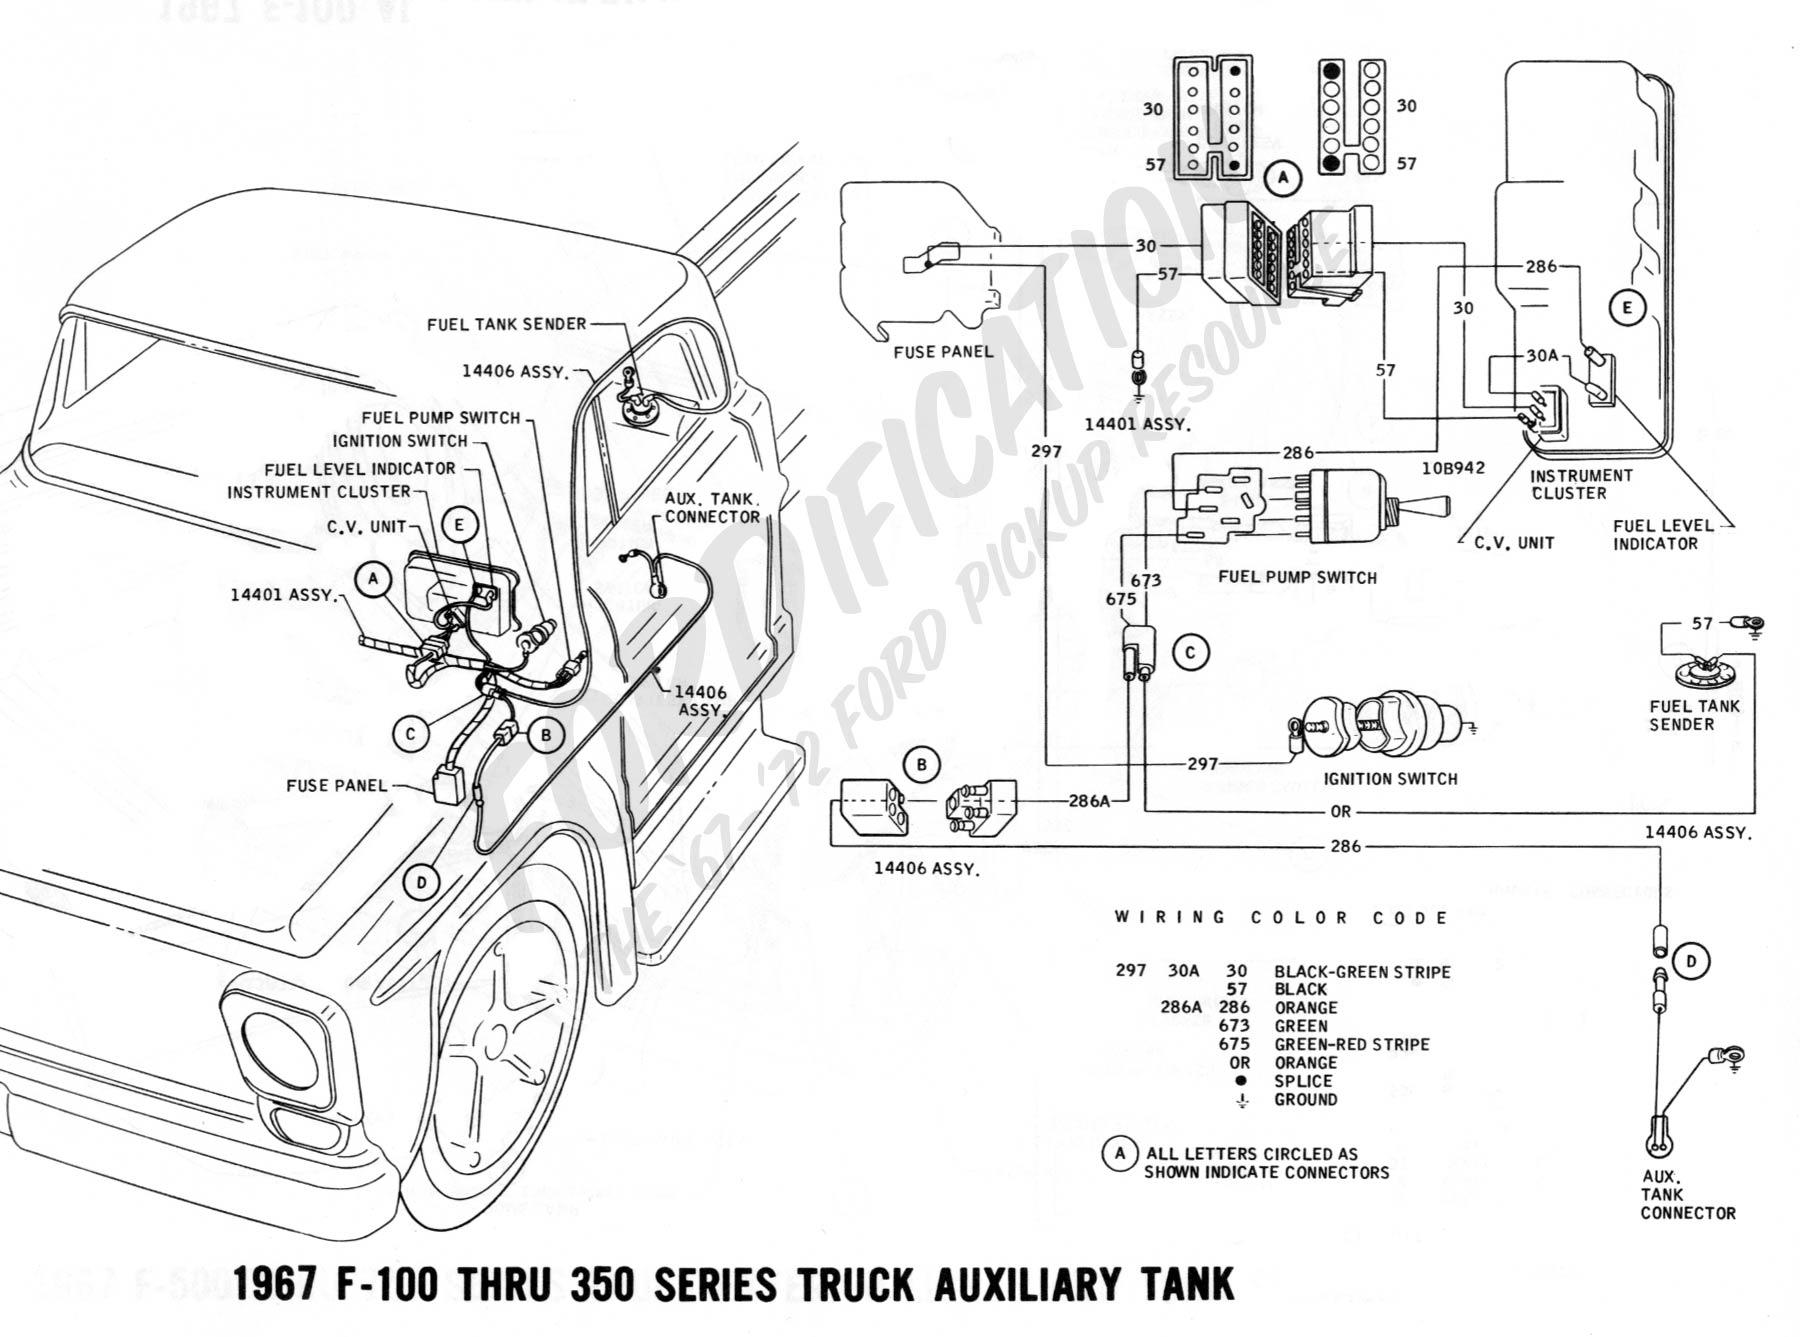 wiring 1967auxtank ford truck technical drawings and schematics section h wiring  at fashall.co